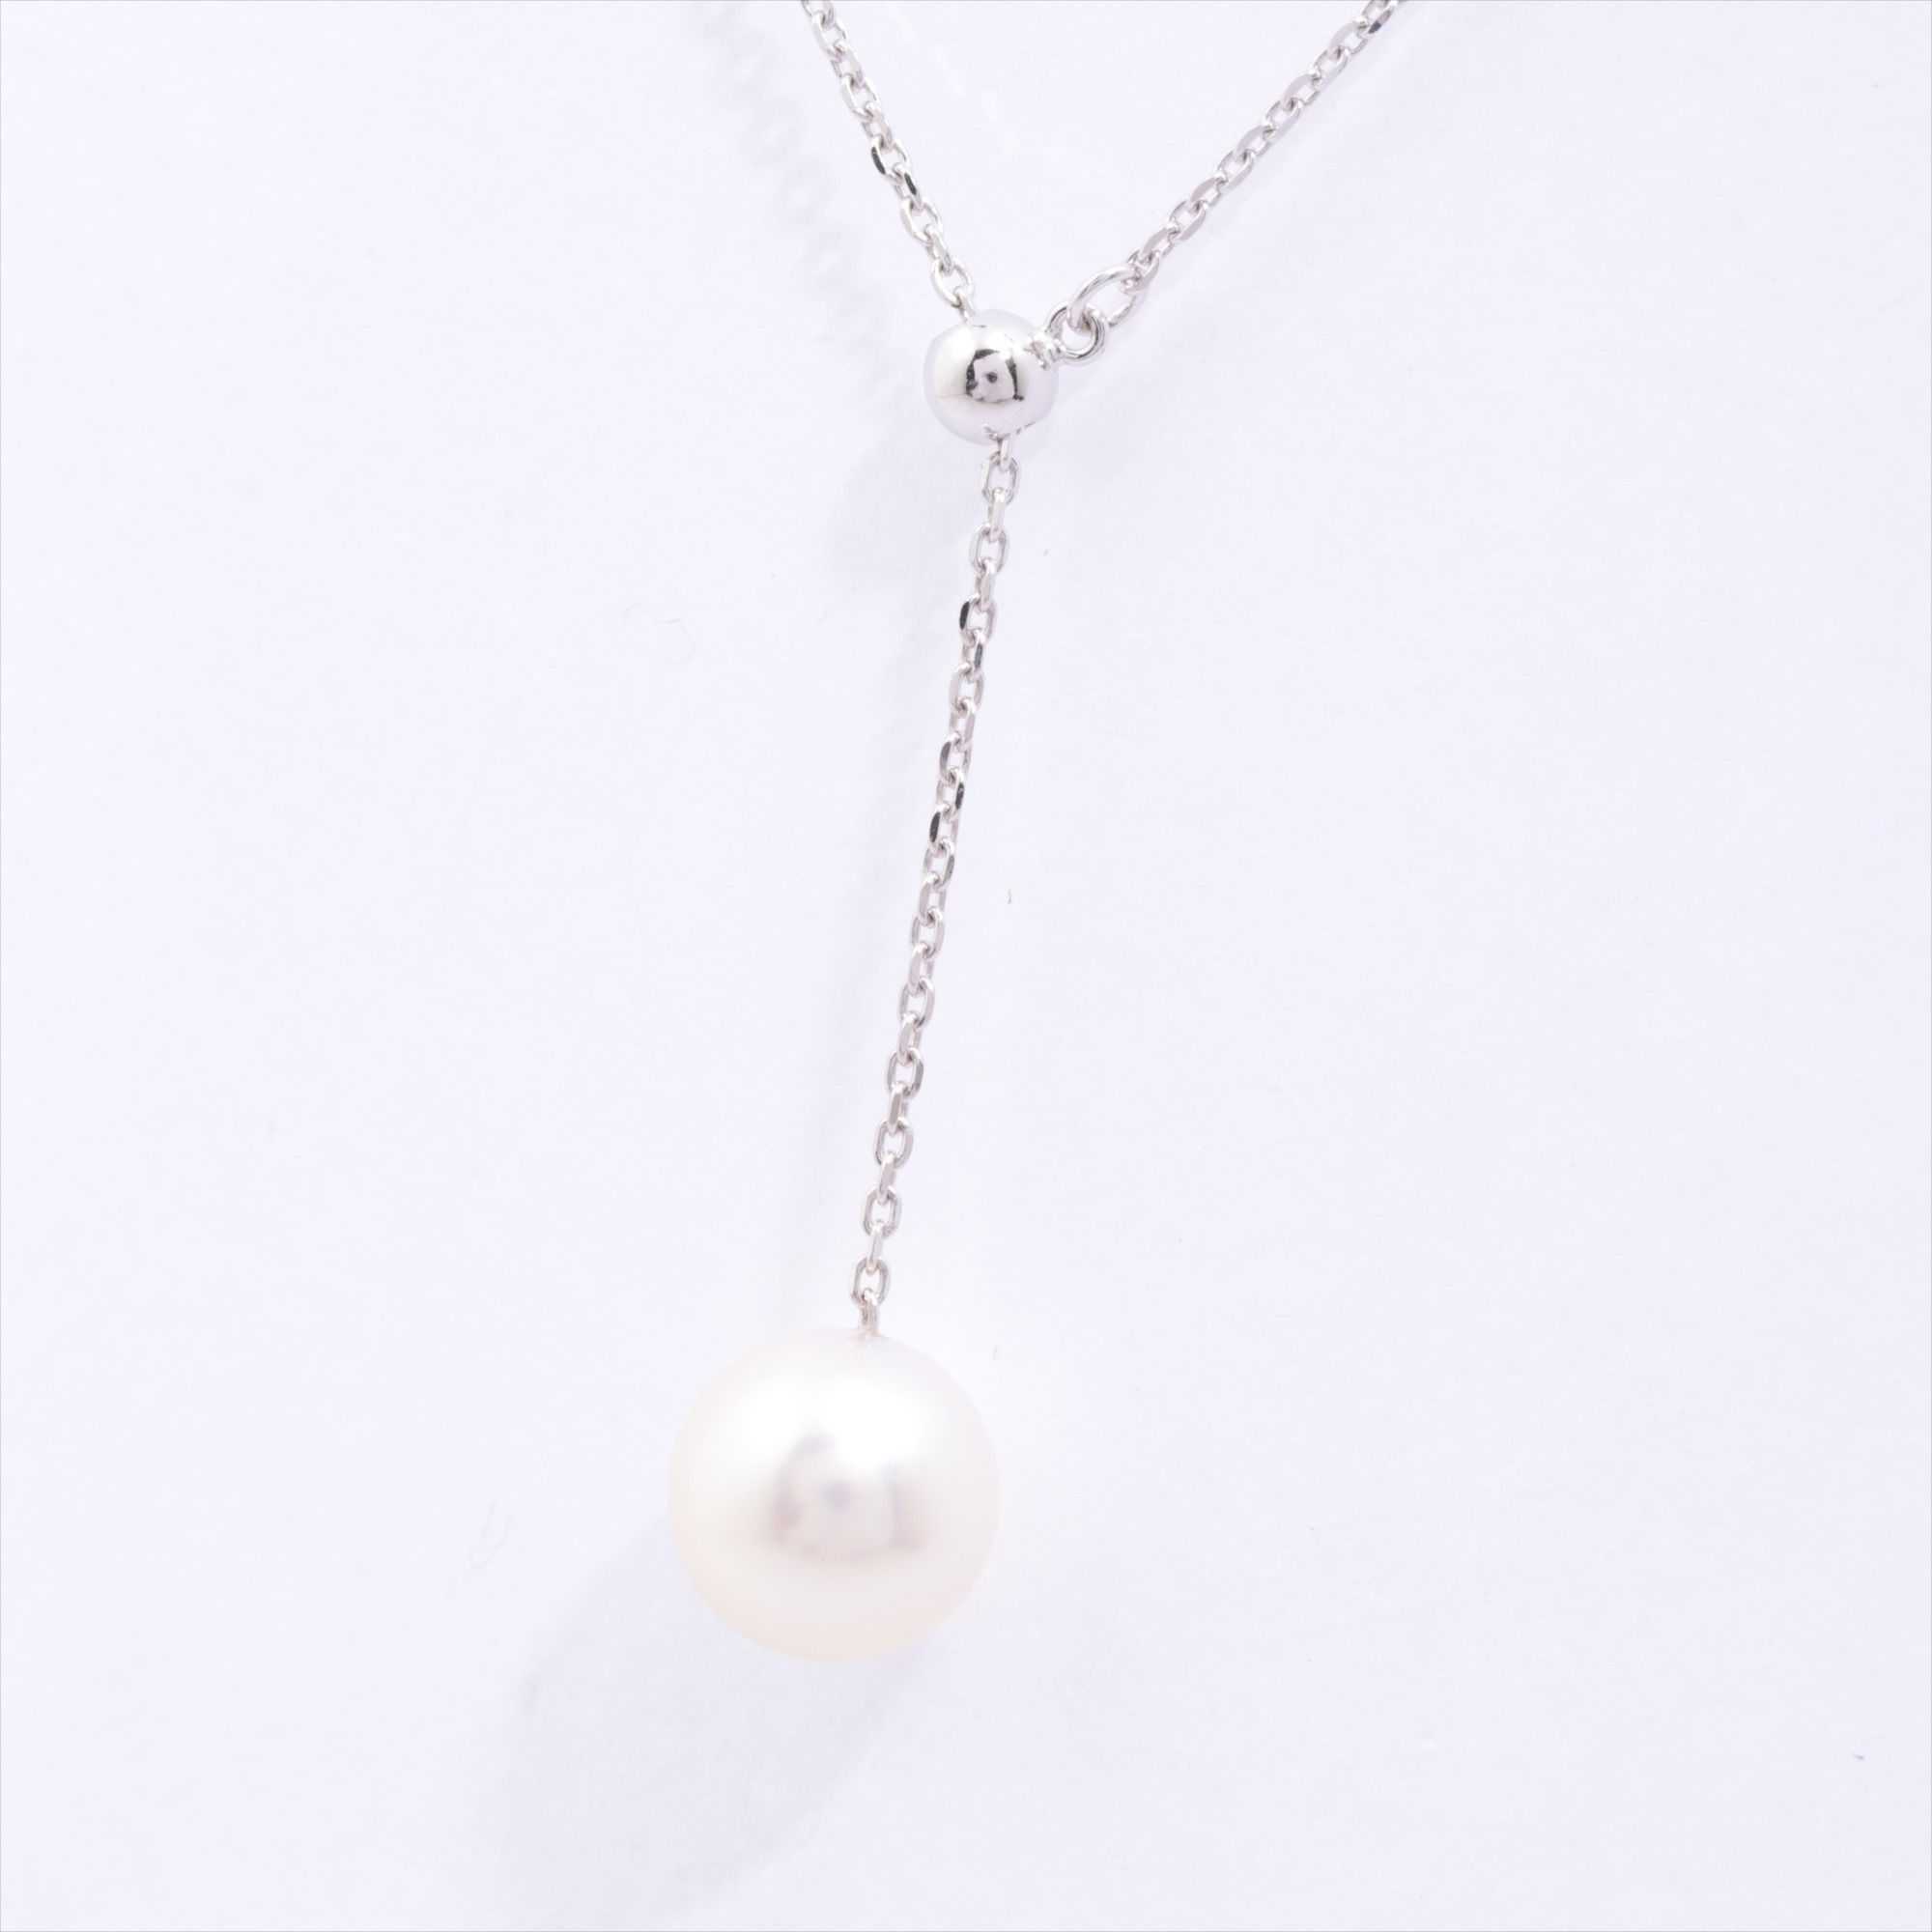 [Used article] Tasaki pearl necklace K18 2.4g 7.6mm